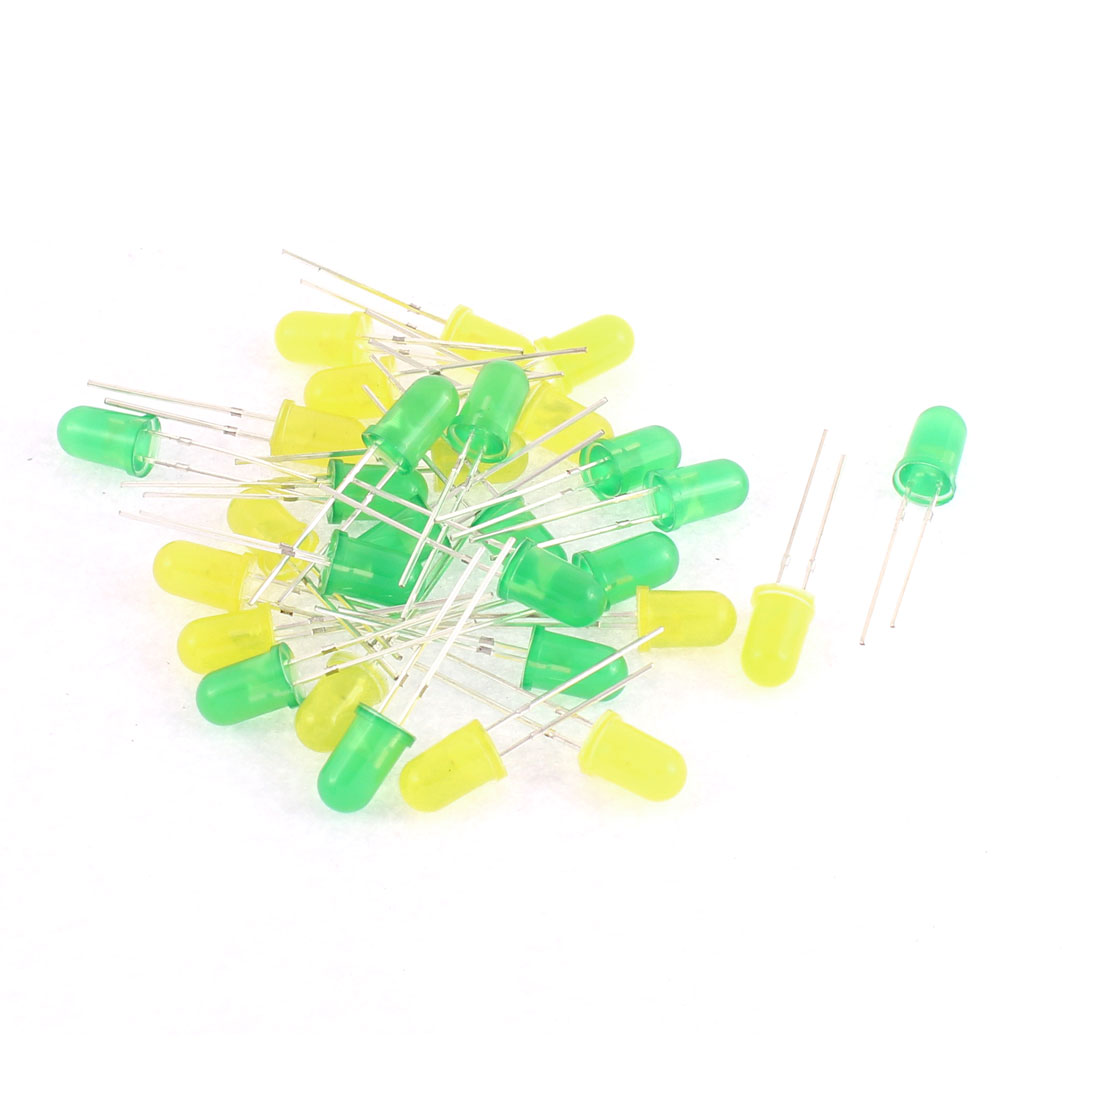 30pcs 5mm Round Yellow Green LED Light-emitting Diode Lamp Beads